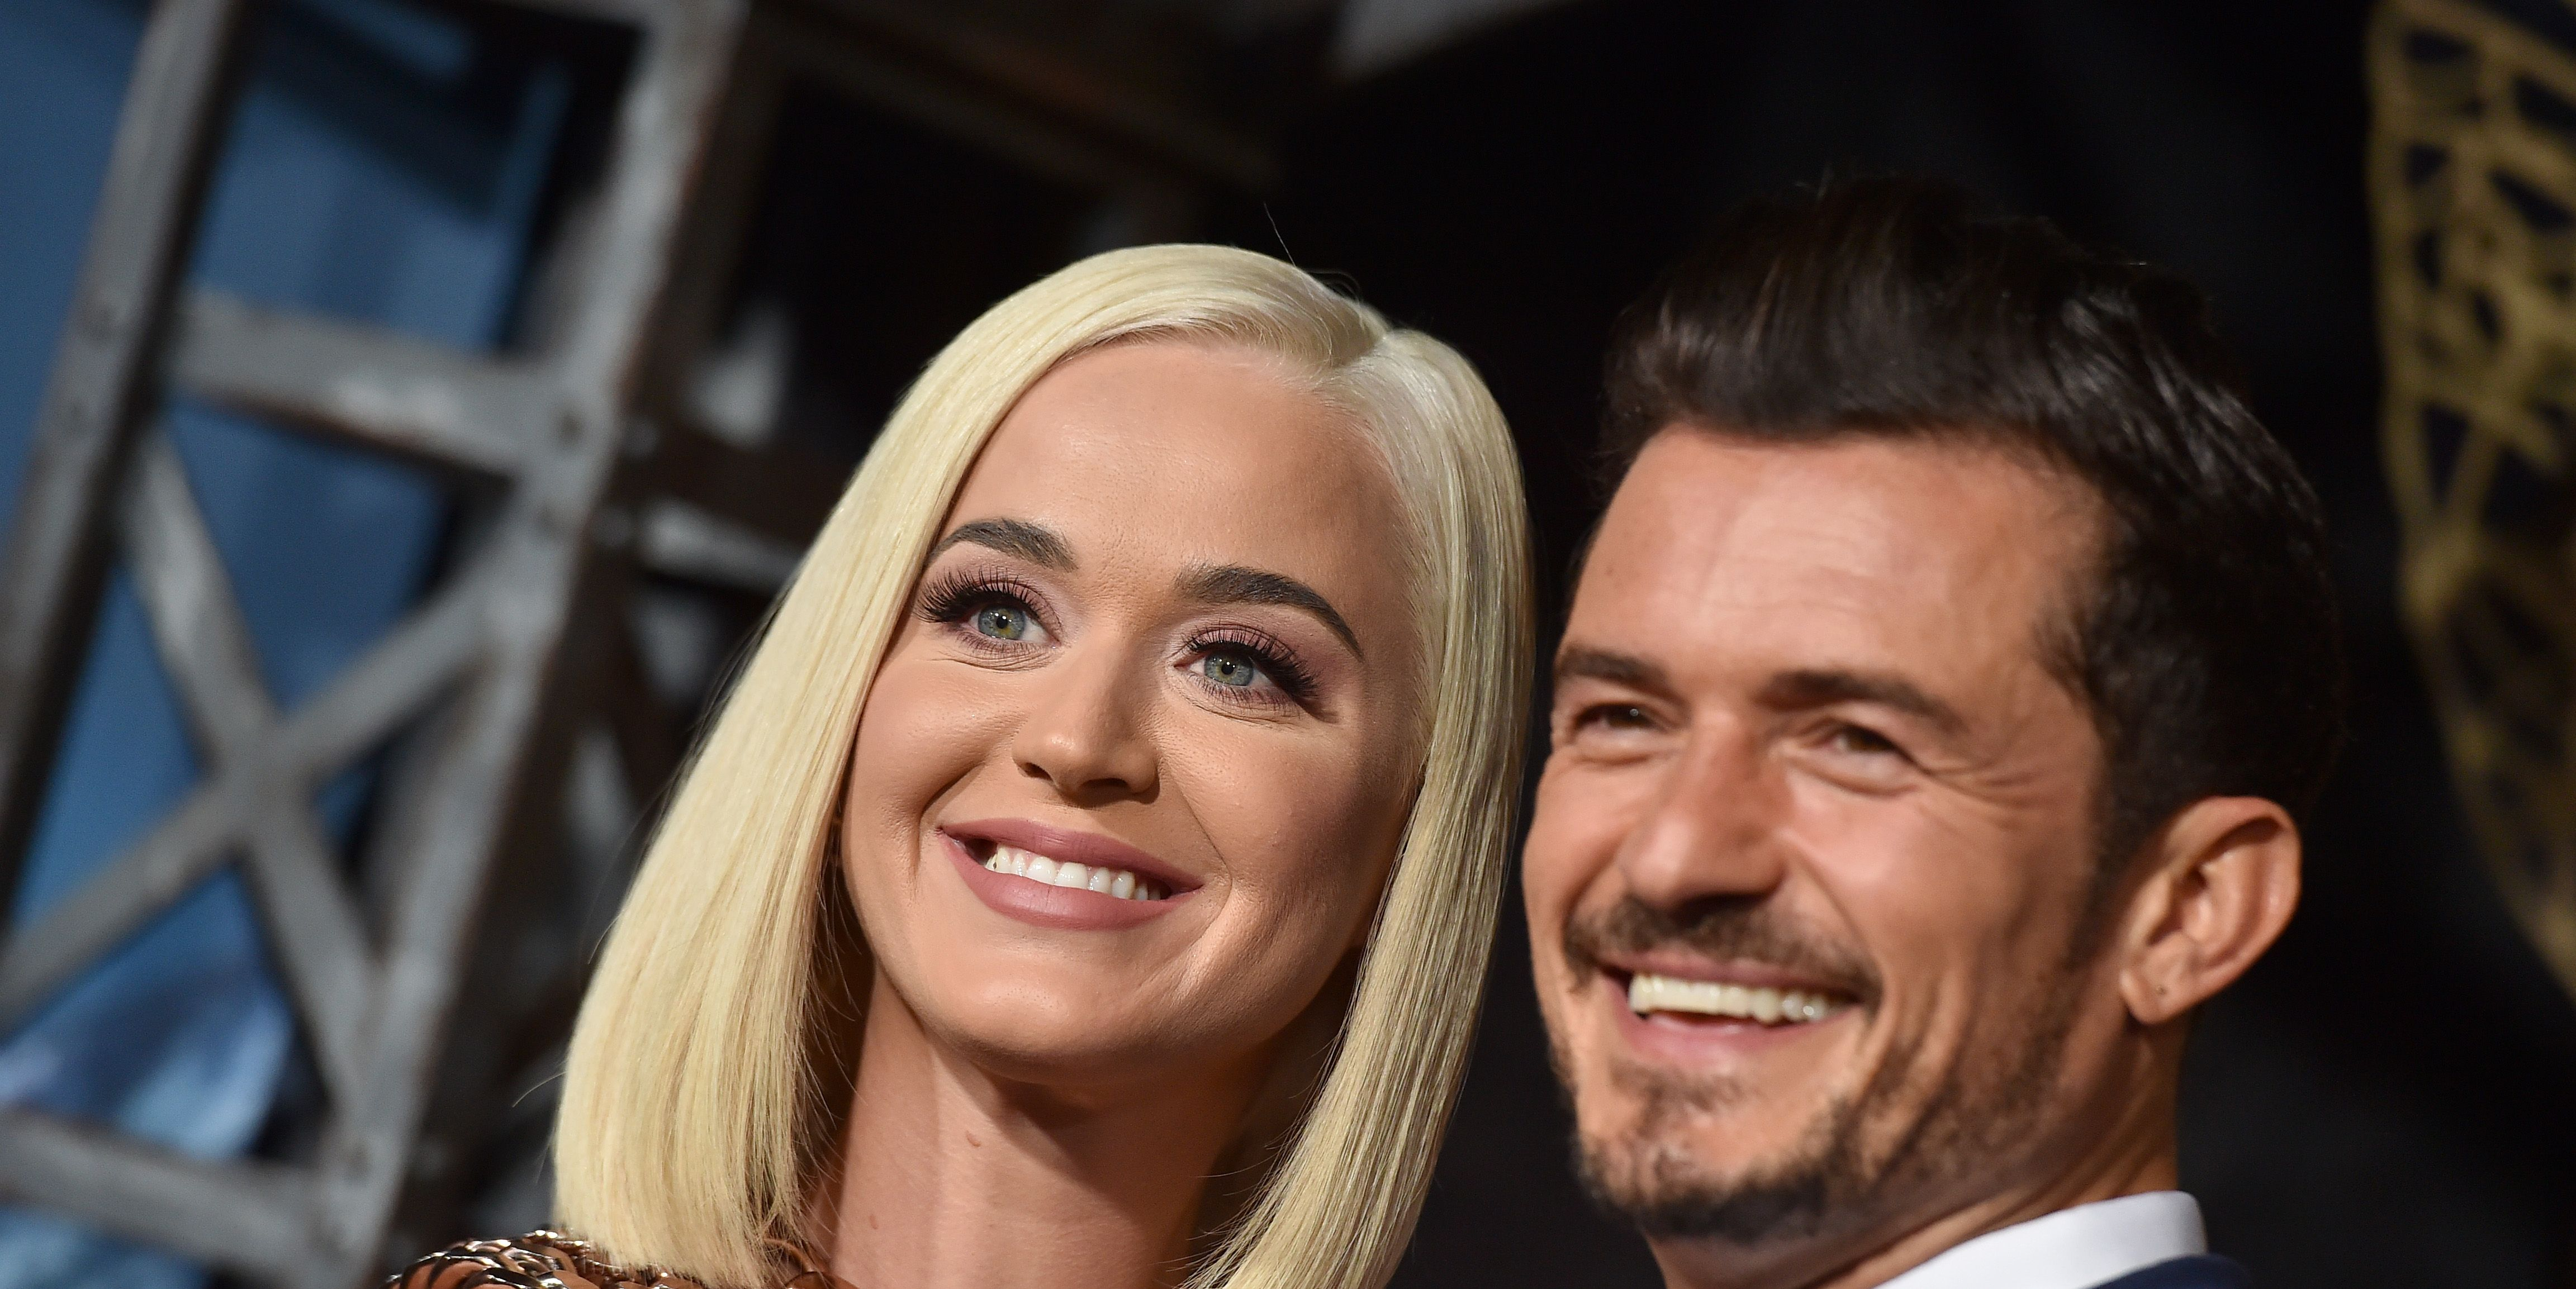 Katy Perry And Orlando Bloom Just Announced They're Having A Baby Girl